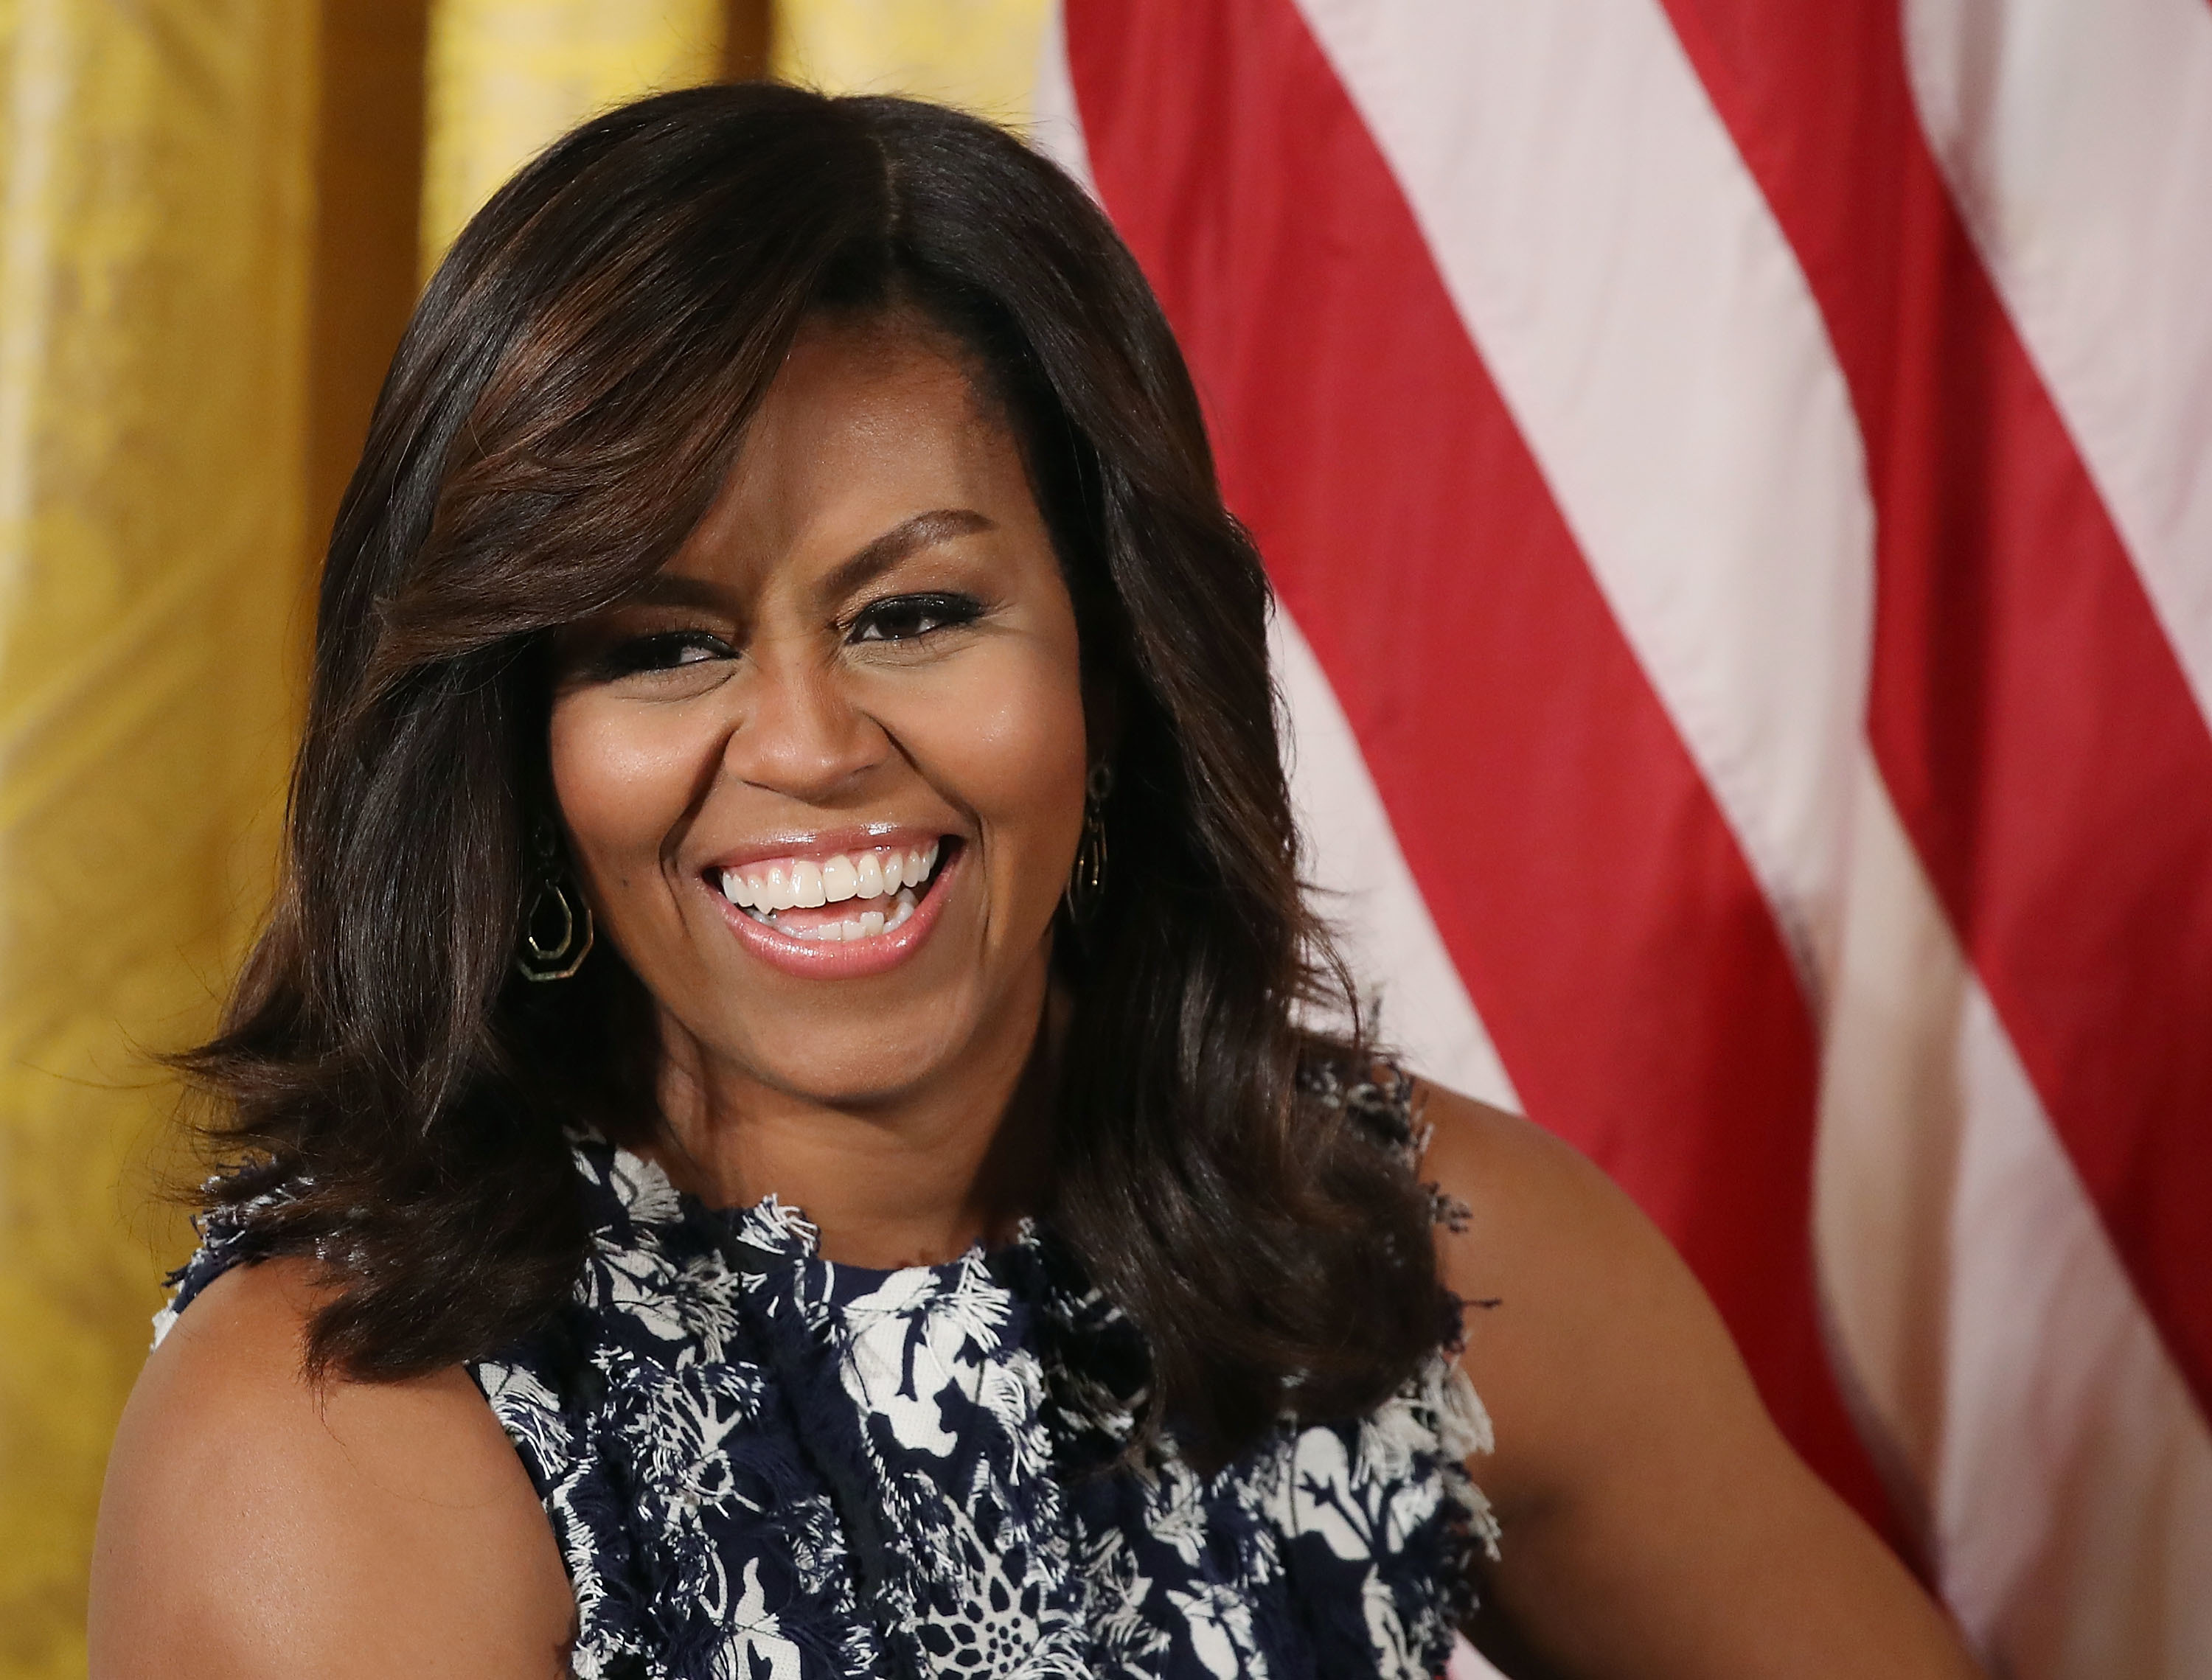 Michelle Obama: From Reluctant Political Spouse To Pop Culture Icon